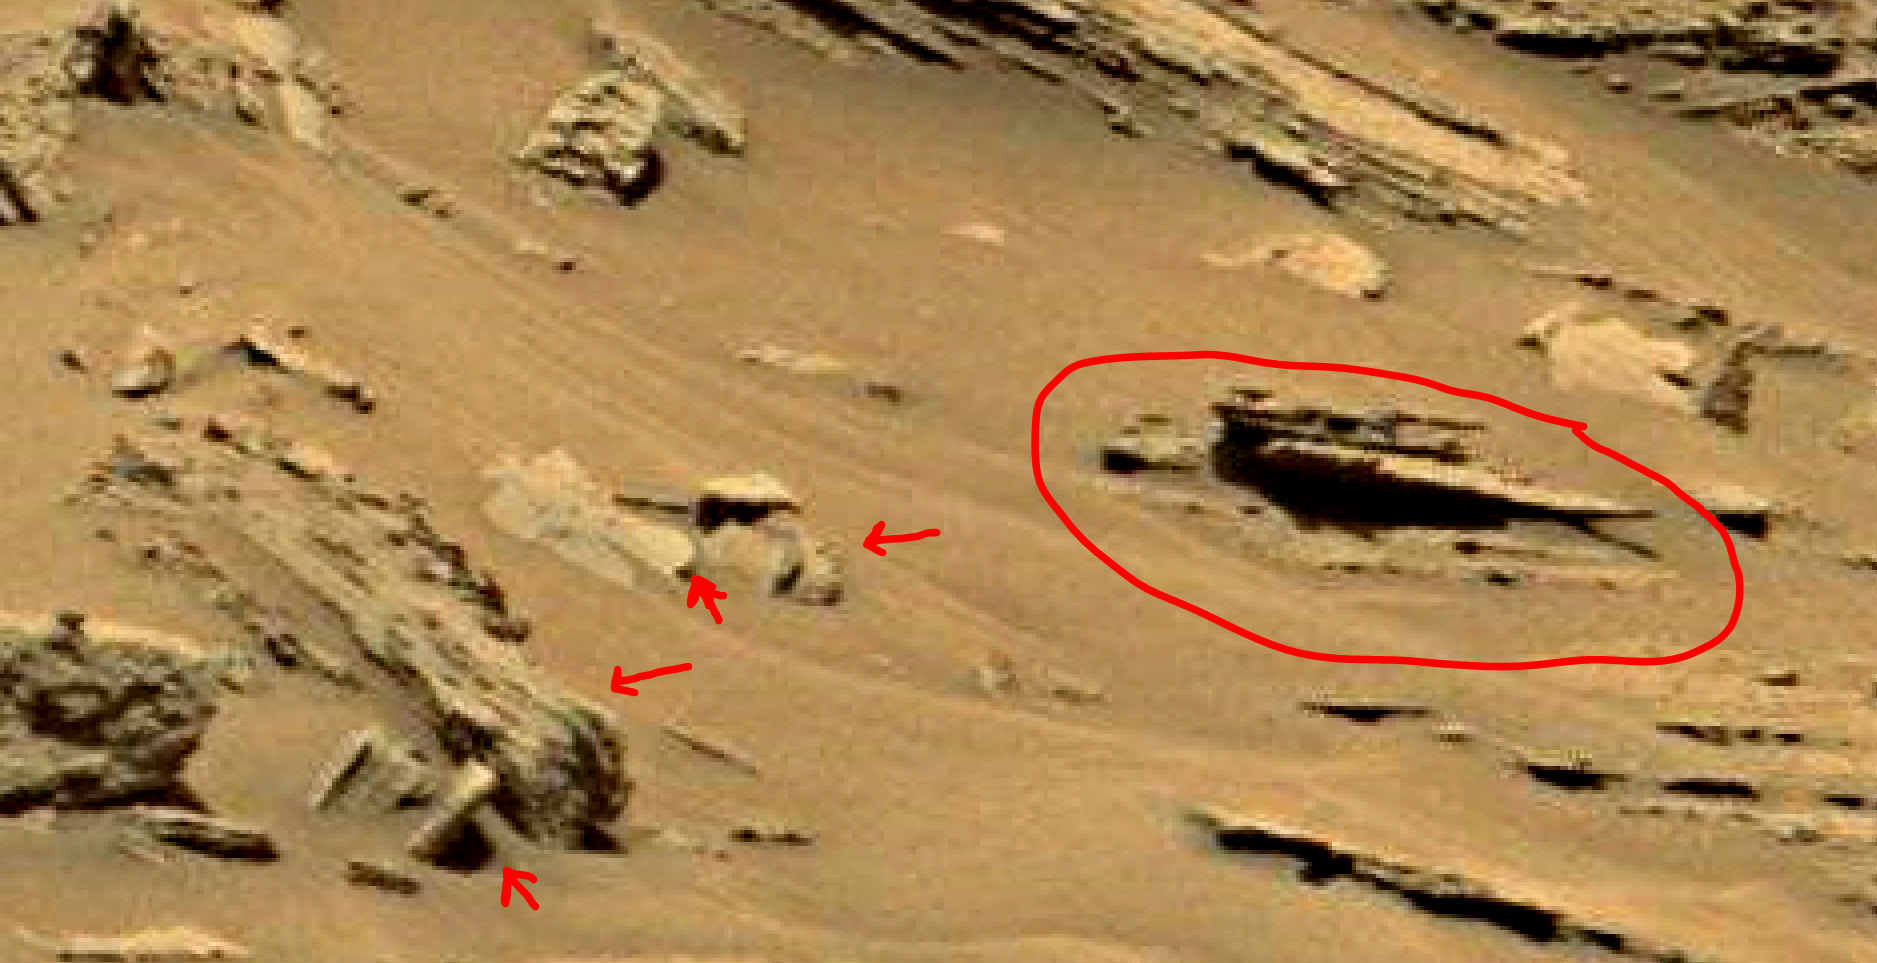 mars sol 1353 anomaly-artifacts 20 was life on mars